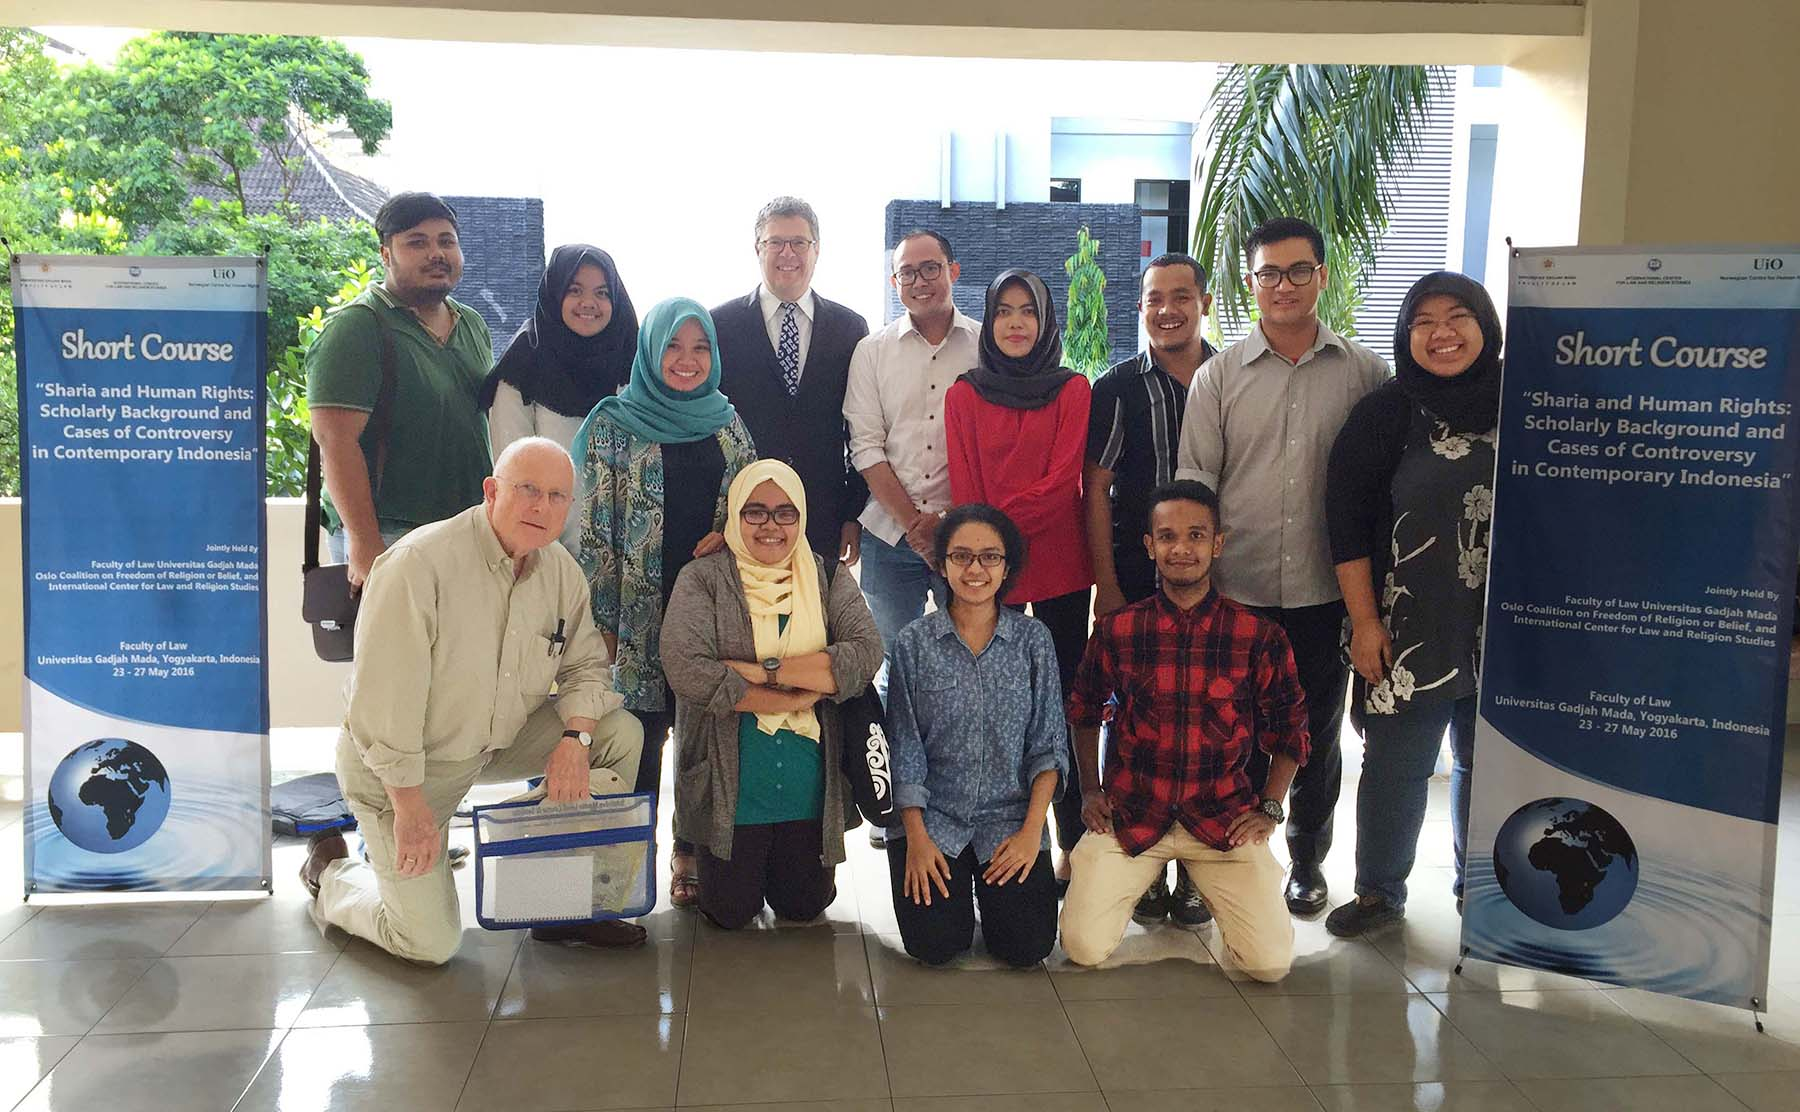 Image for Brett Scharffs at Third Yogyakarta Short Course on Sharia and Human Rights - May 2016